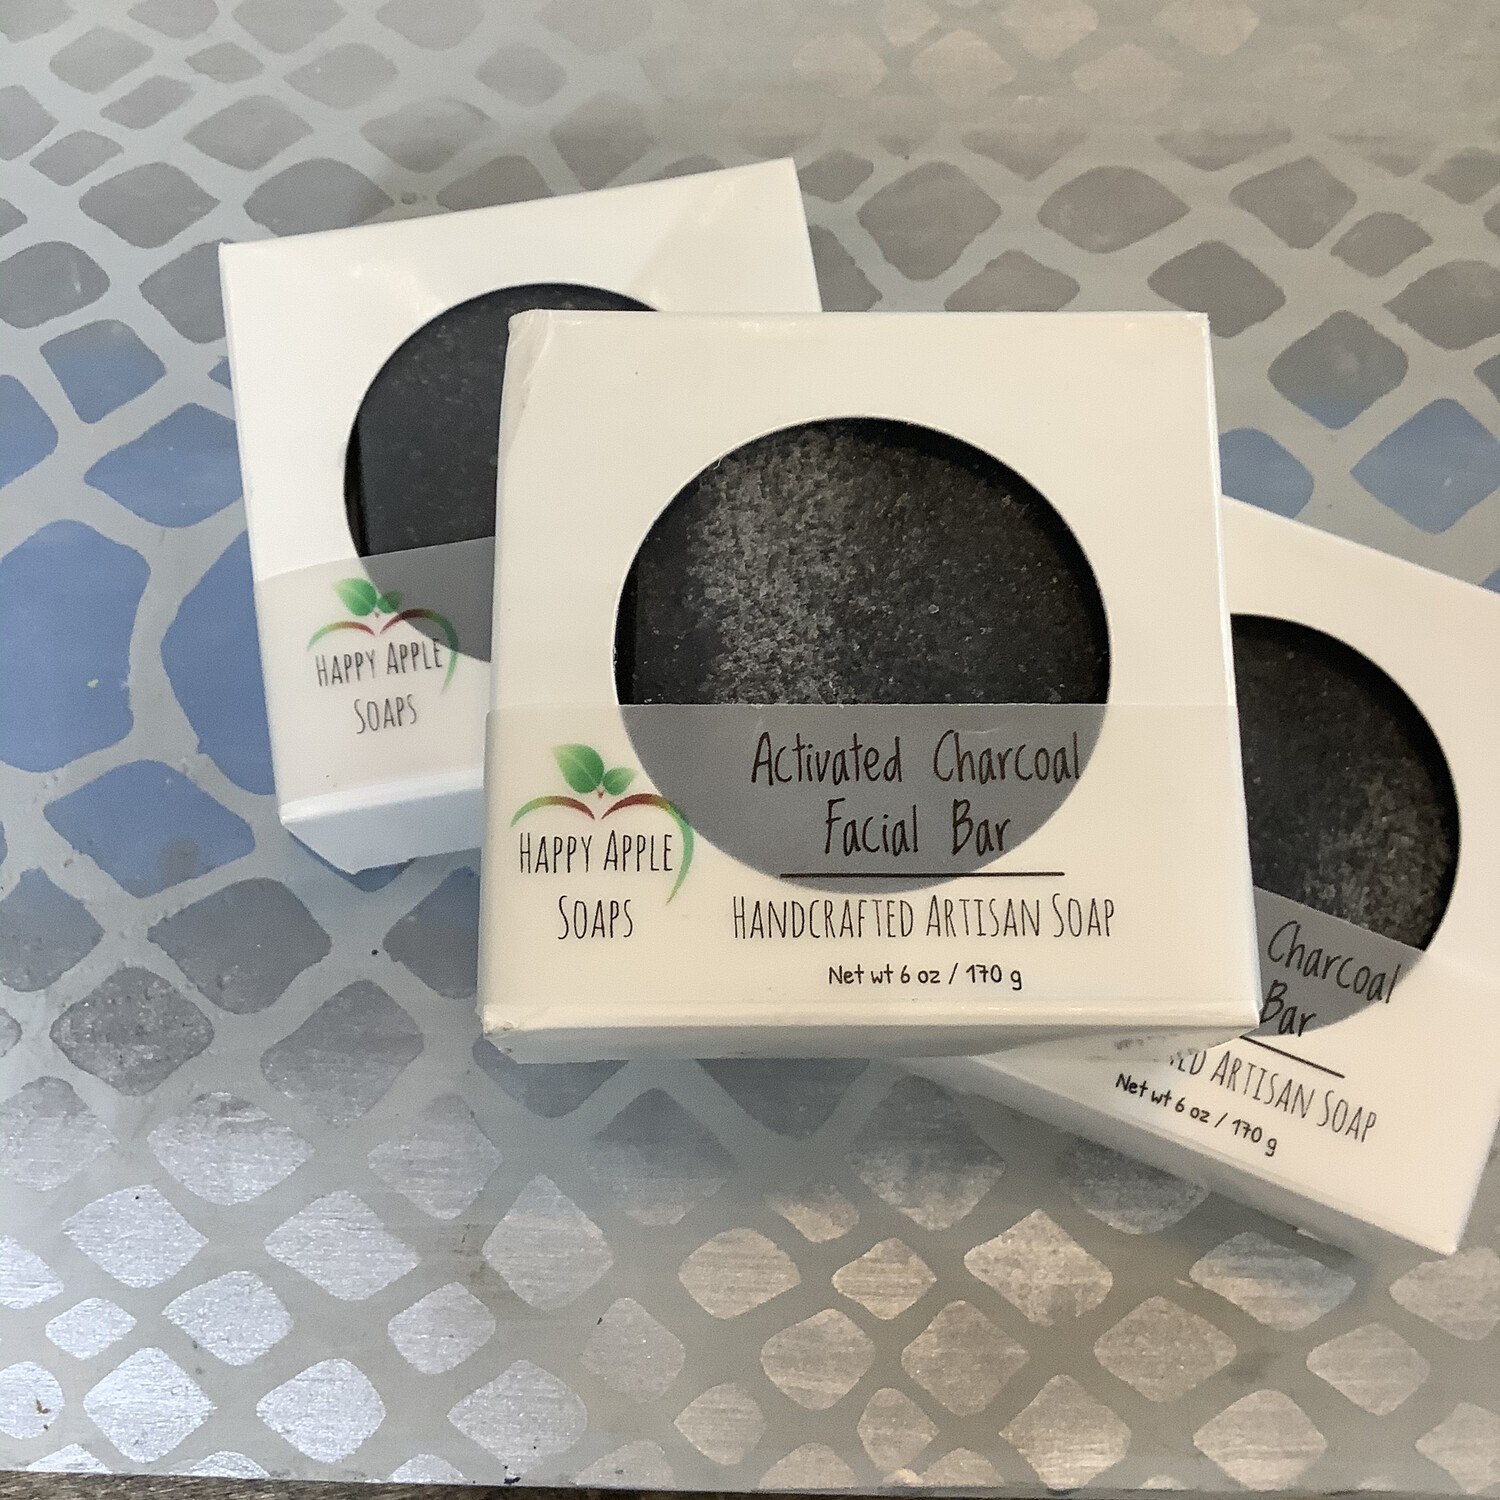 Happy Apple Charcoal Facial Bar